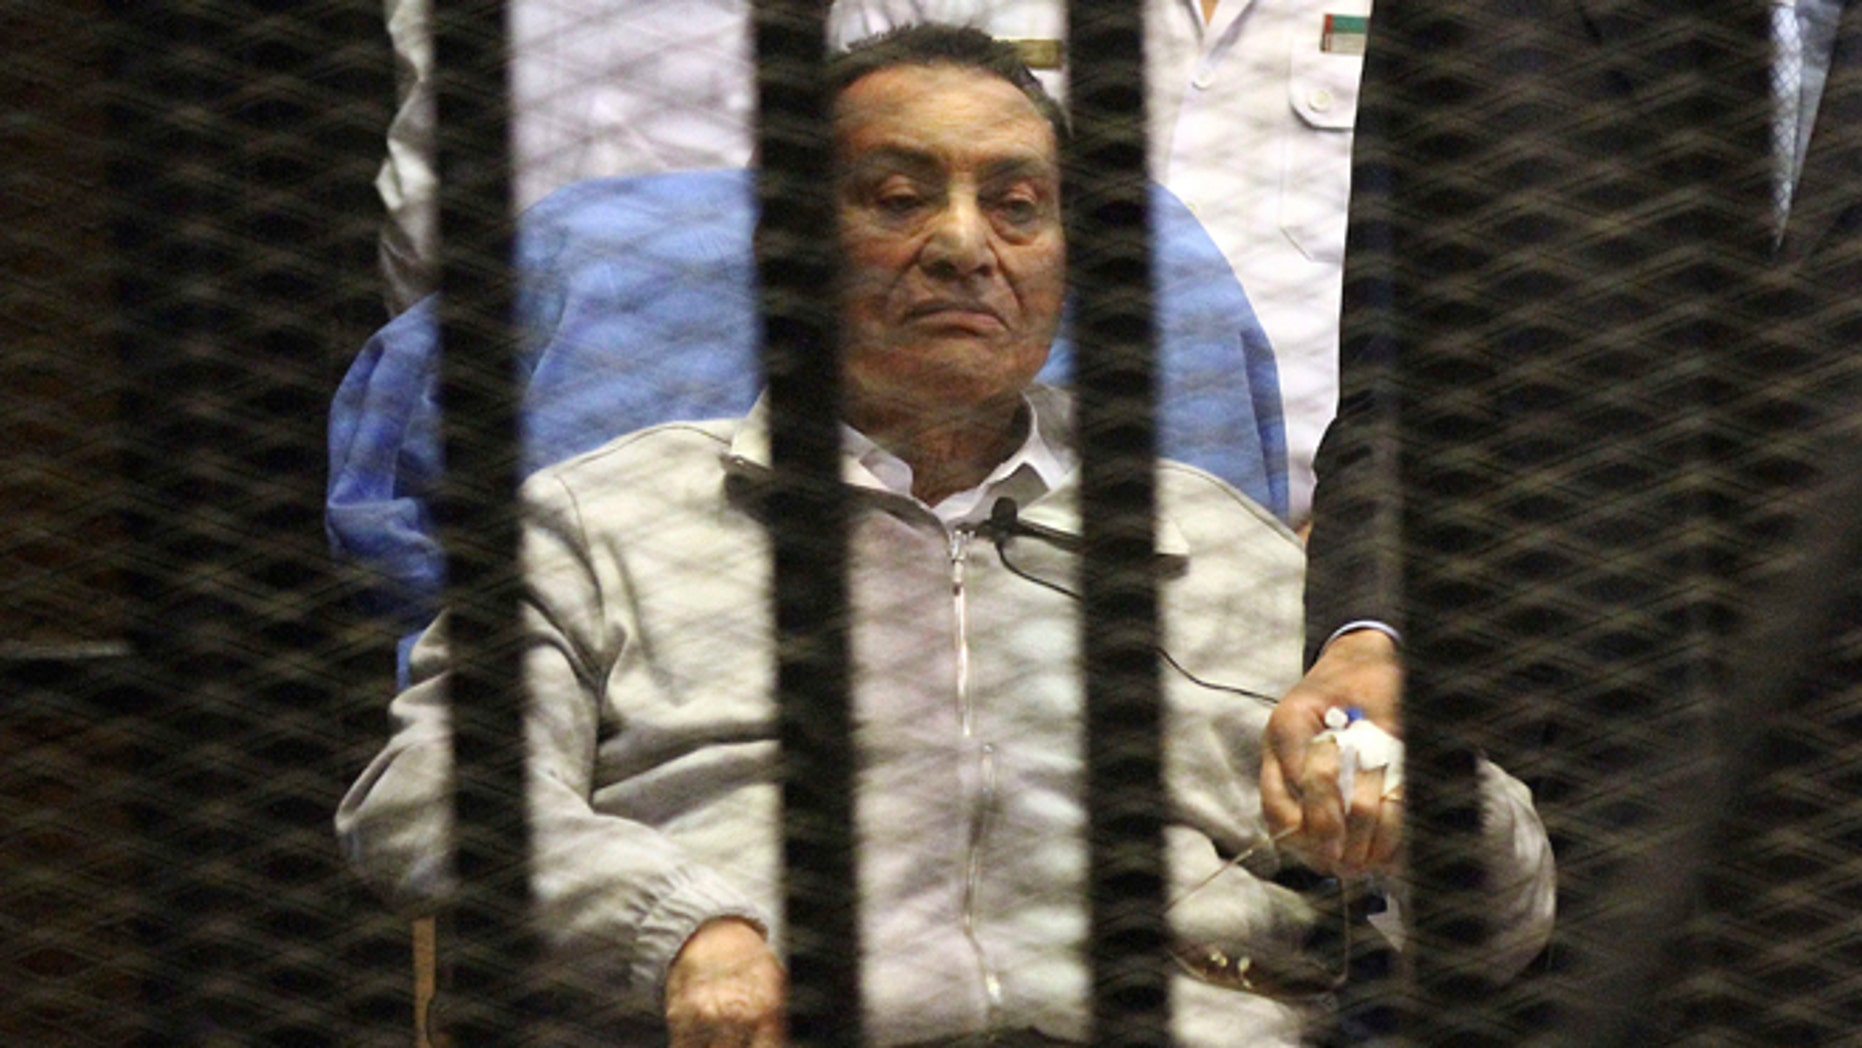 April 15, 2013: Egypt's ousted President Hosni Mubarak sits inside a dock at the police academy on the outskirts of Cairo.